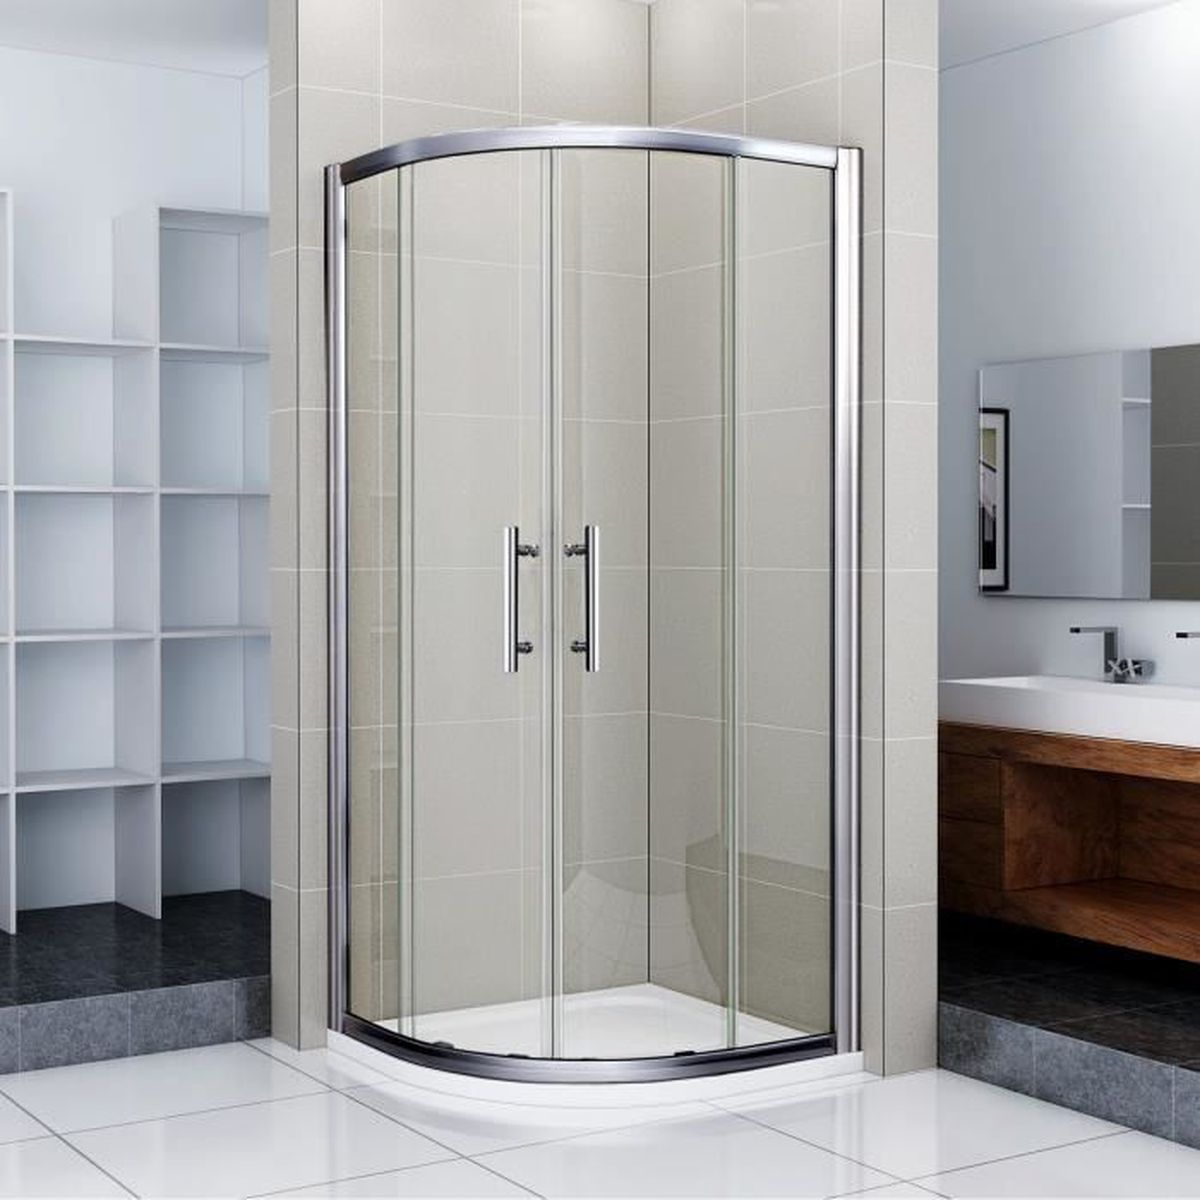 80 80 195cm shower enclosure 1 4 rond porte de douche coulissante anticalcaire achat vente. Black Bedroom Furniture Sets. Home Design Ideas